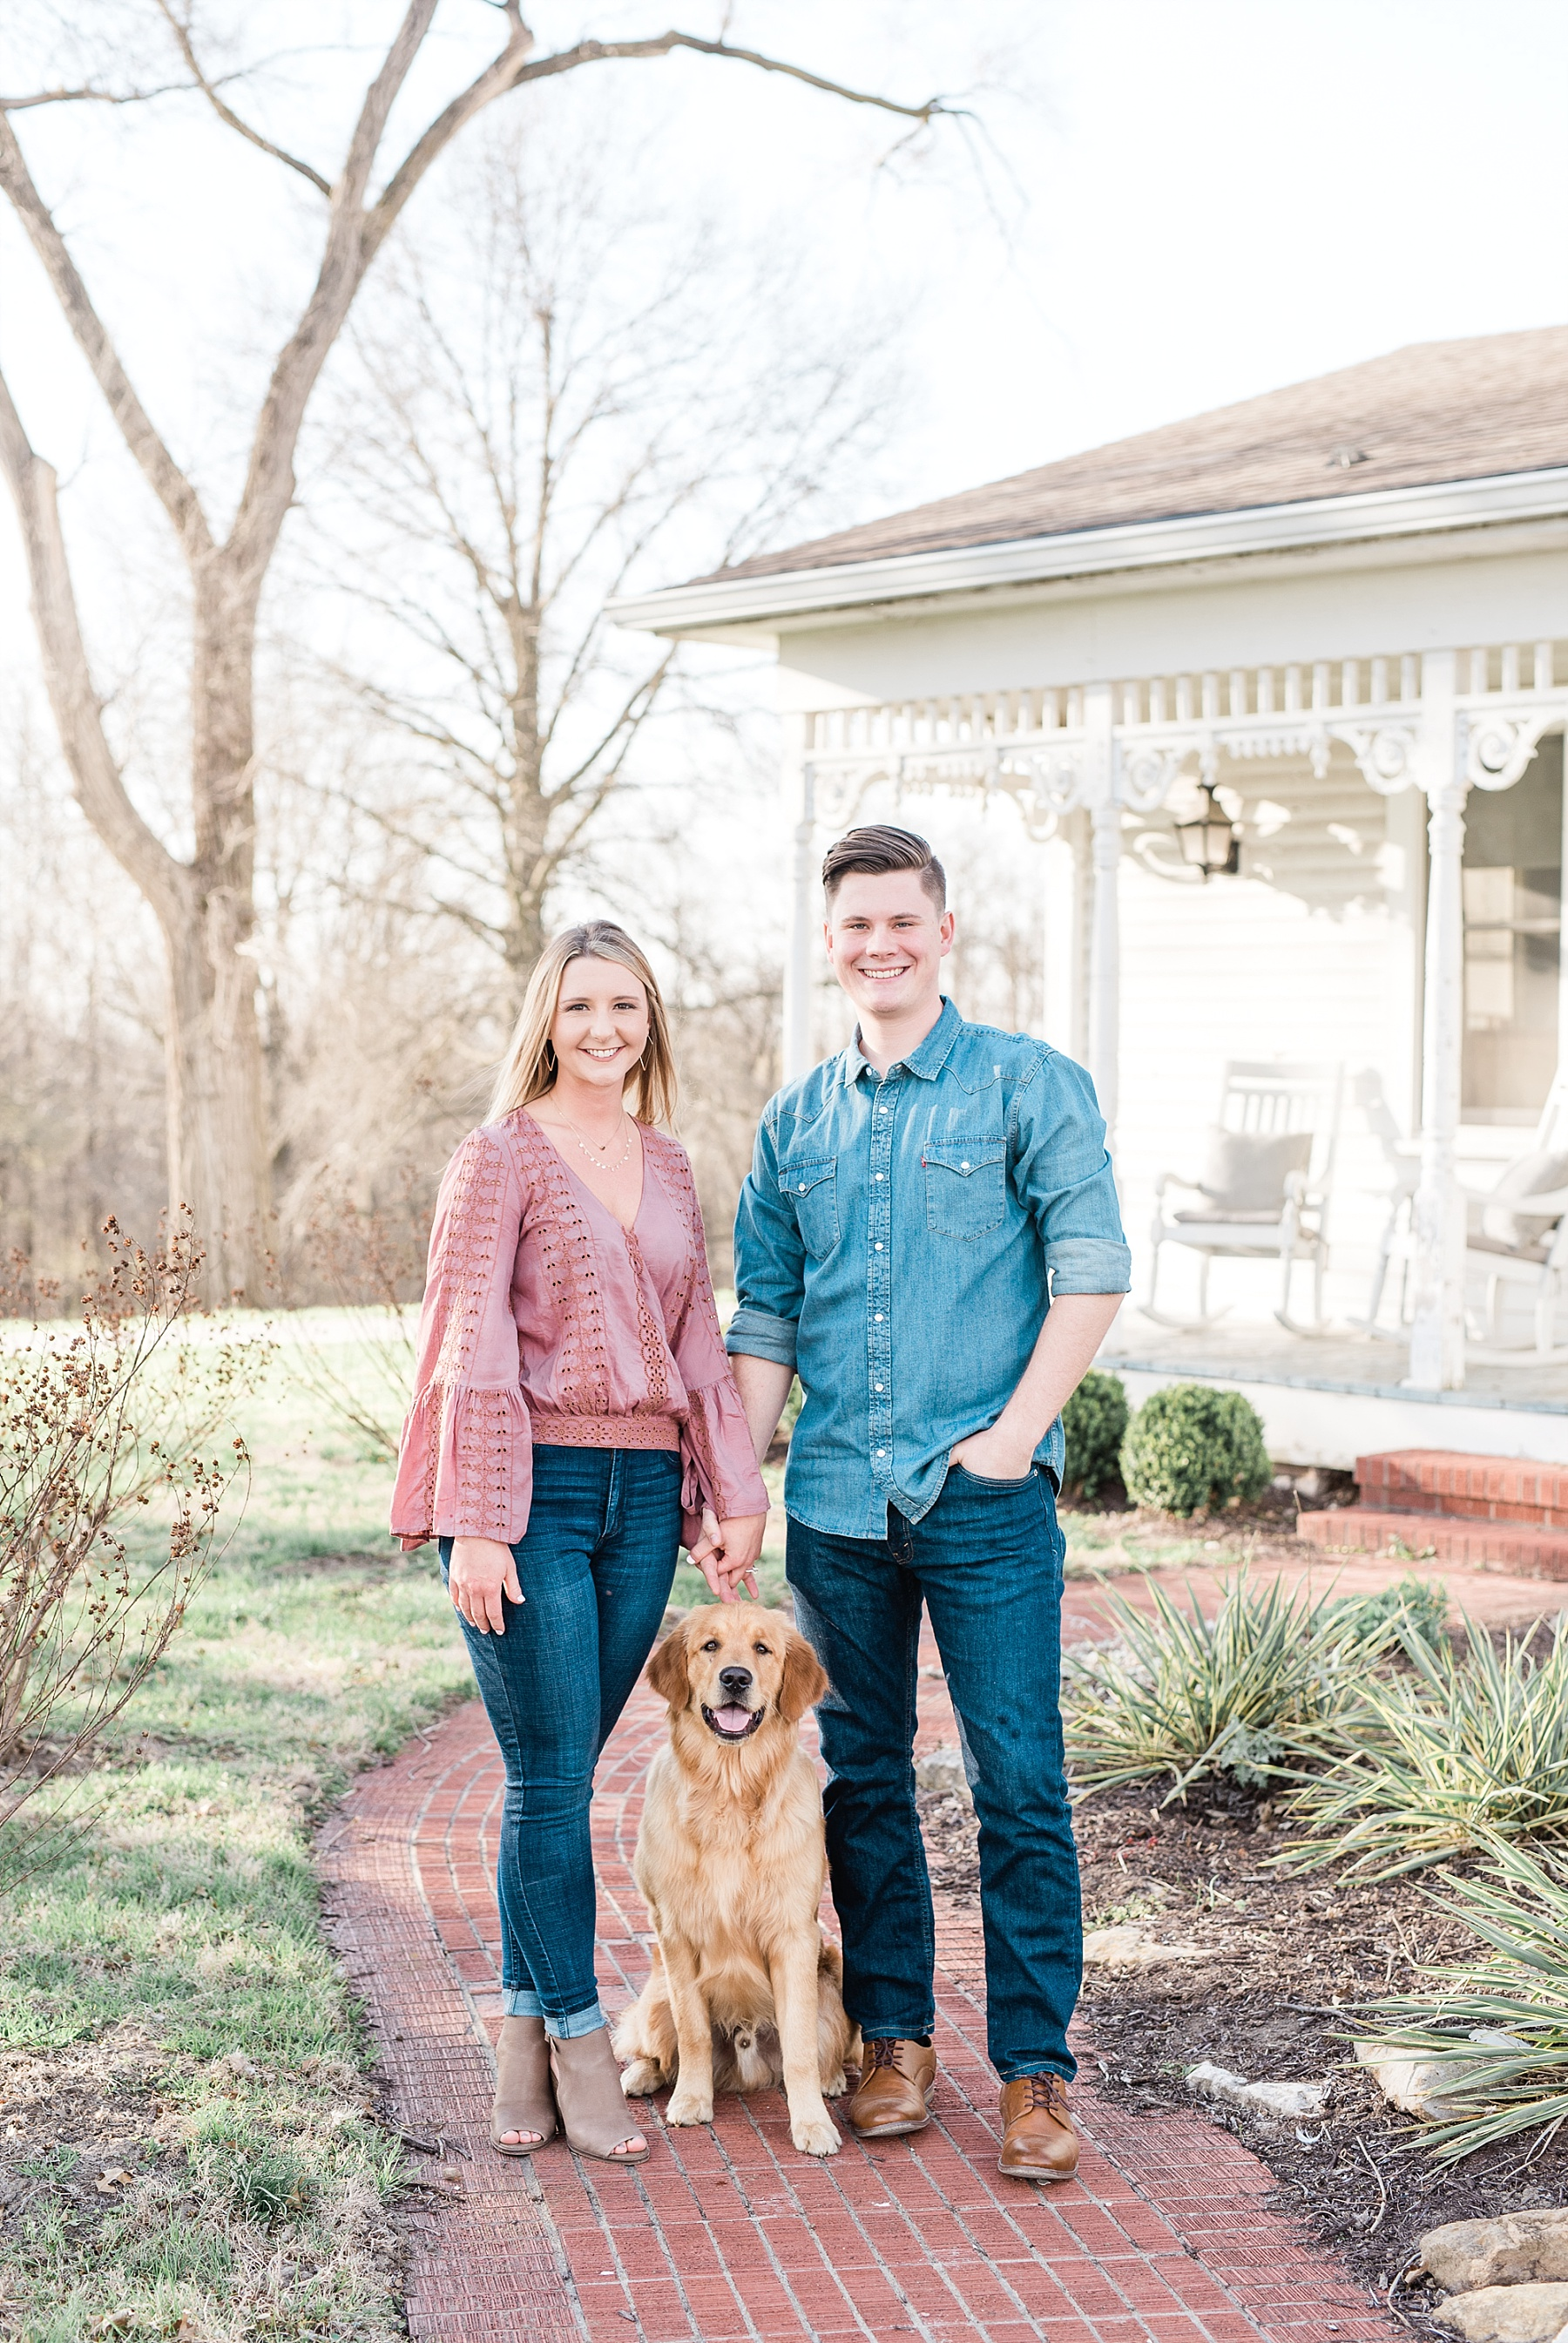 Spring Sunset Engagement Session with High School Sweethearts and Golden Retriever Puppy at Blue Bell Farm Fayette Missouri by Kelsi Kliethermes Photography_0005.jpg